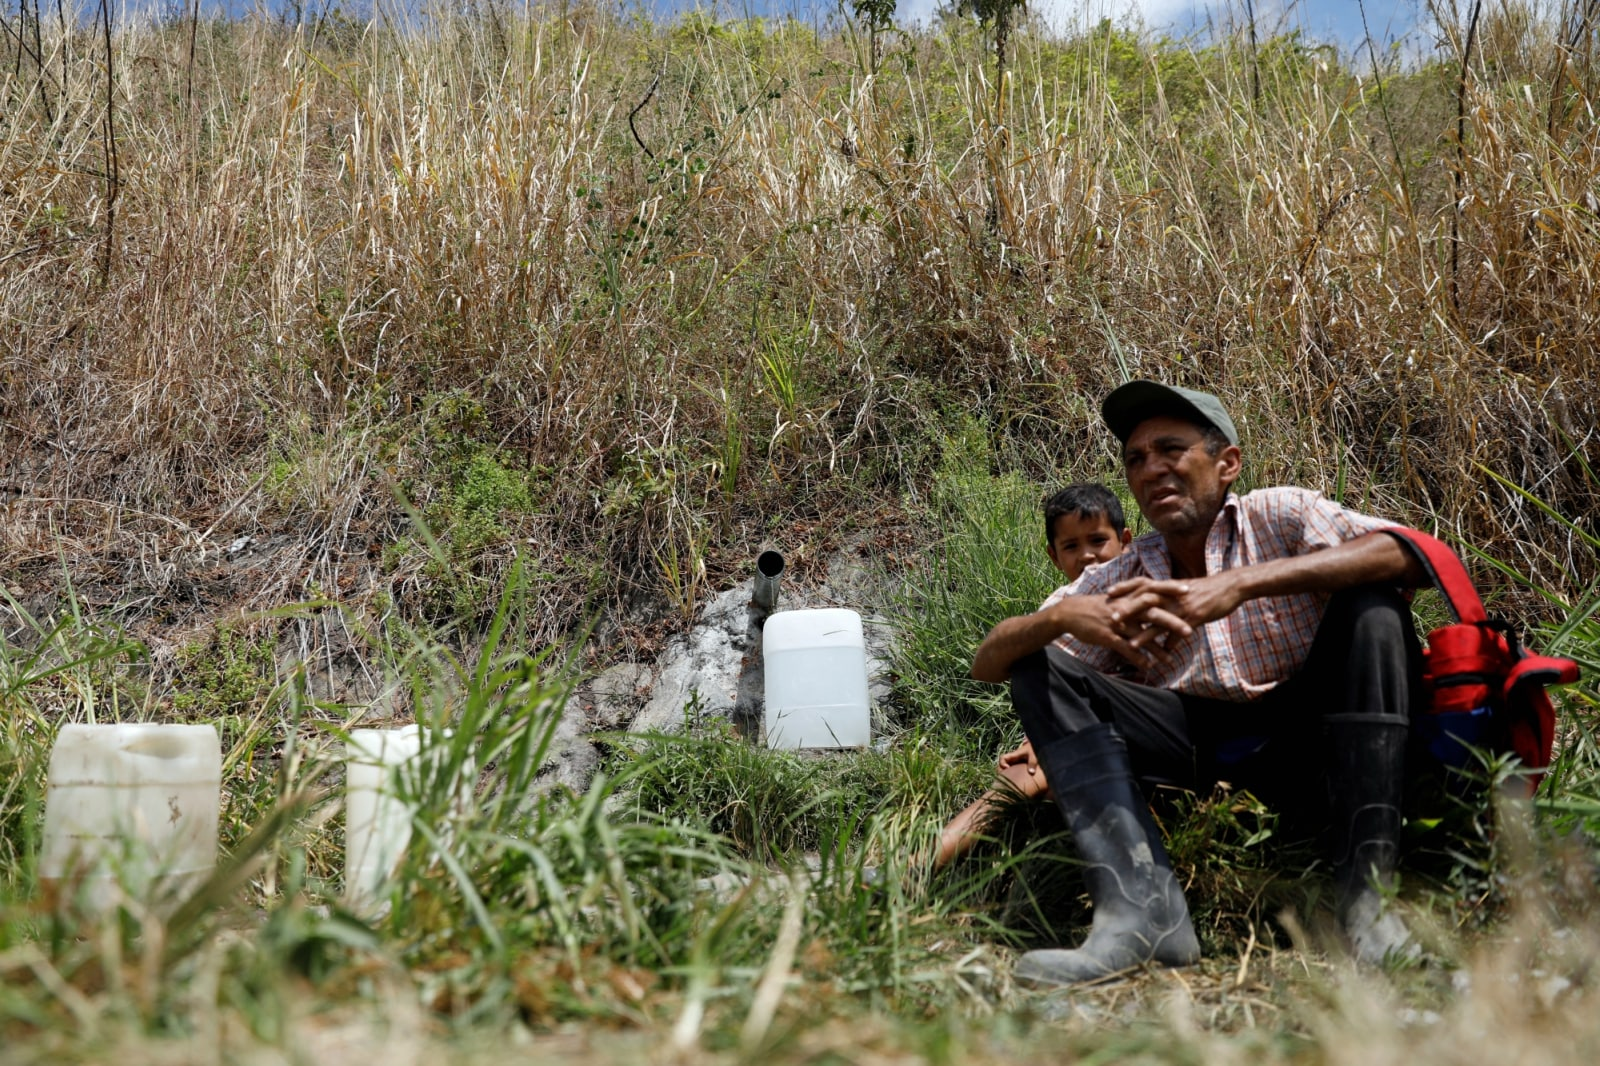 People wait as a bottle fills with water from a mountain stream in Caracas, Venezuela March 13, 2019. REUTERS/Carlos Jasso